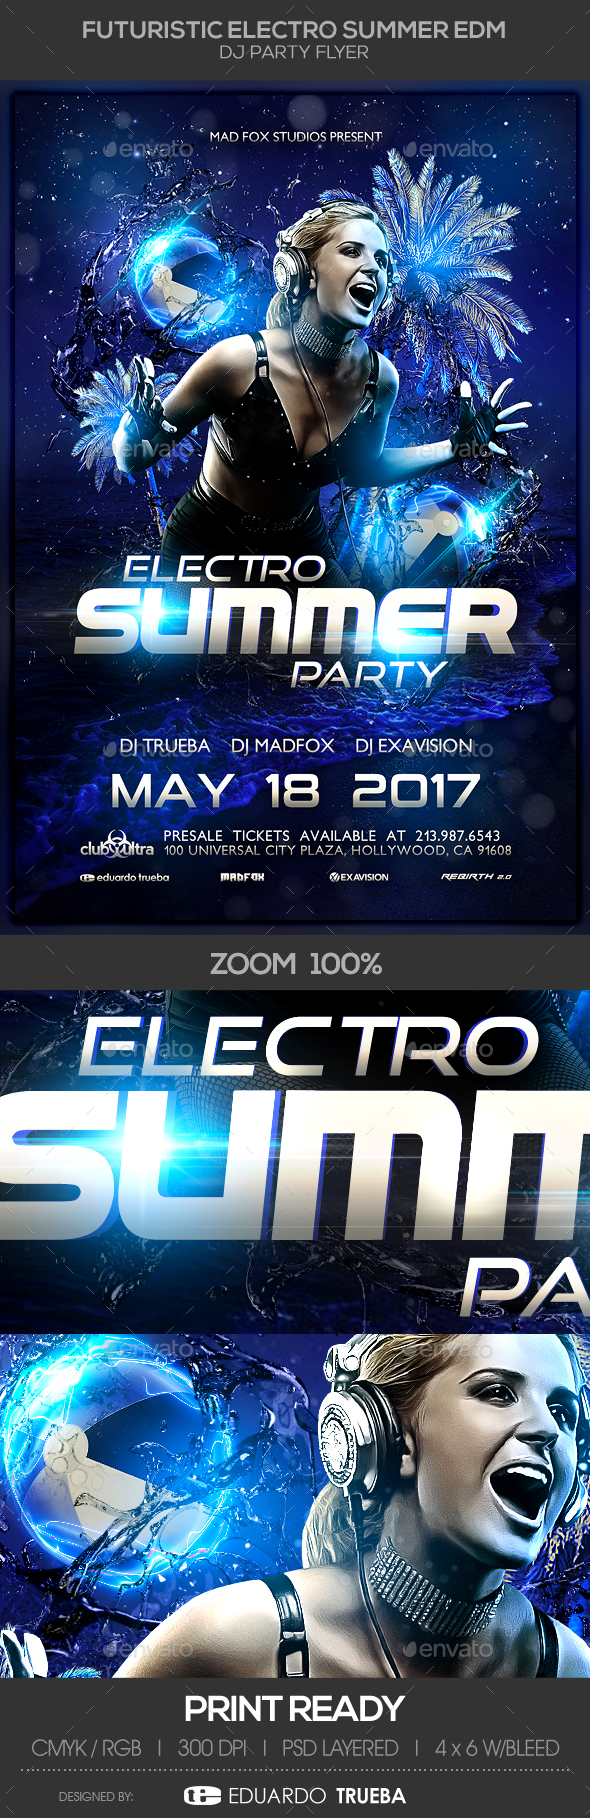 Futuristic Electro Summer EDM Dj Party Flyer - Clubs & Parties Events